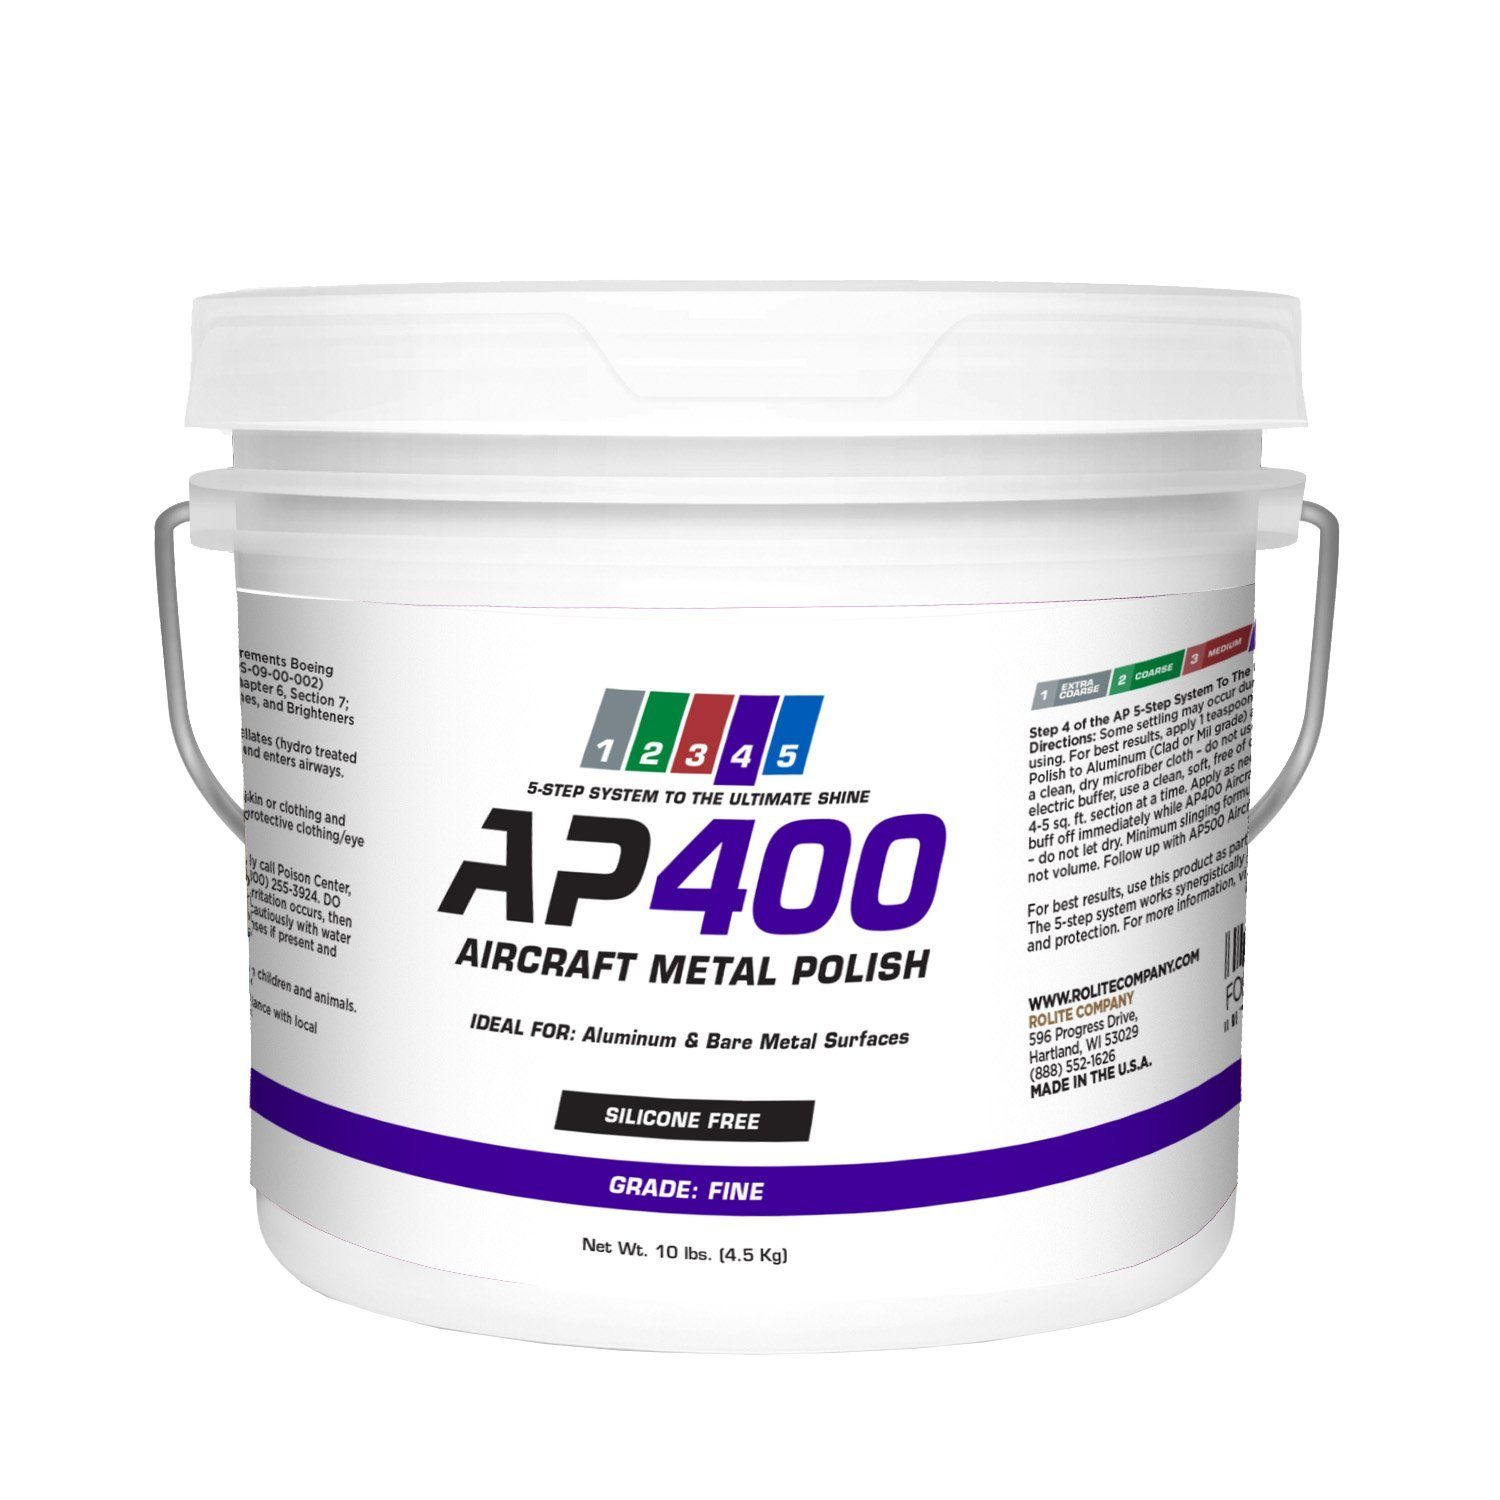 AP400 Aircraft Metal Polish (10lb) - Fine - for Airplane Aluminum & Bare Metal Surfaces, Brightwork, Meets Boeing & Airbus Requirements by Rolite (Image #1)